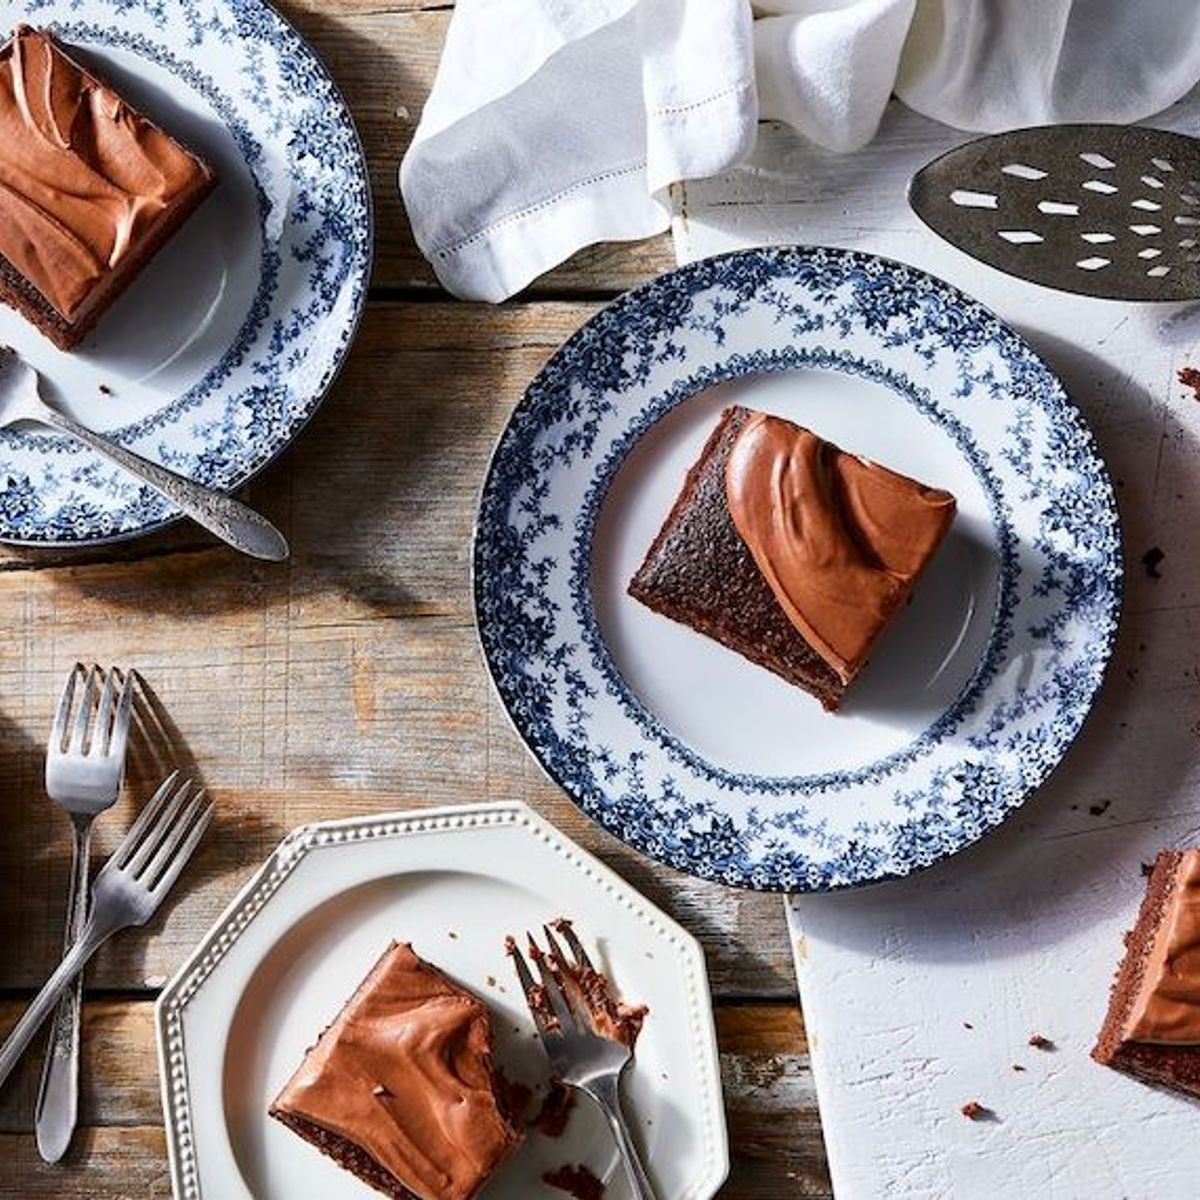 Why I'll never stop baking my mom's groovy chocolate cake